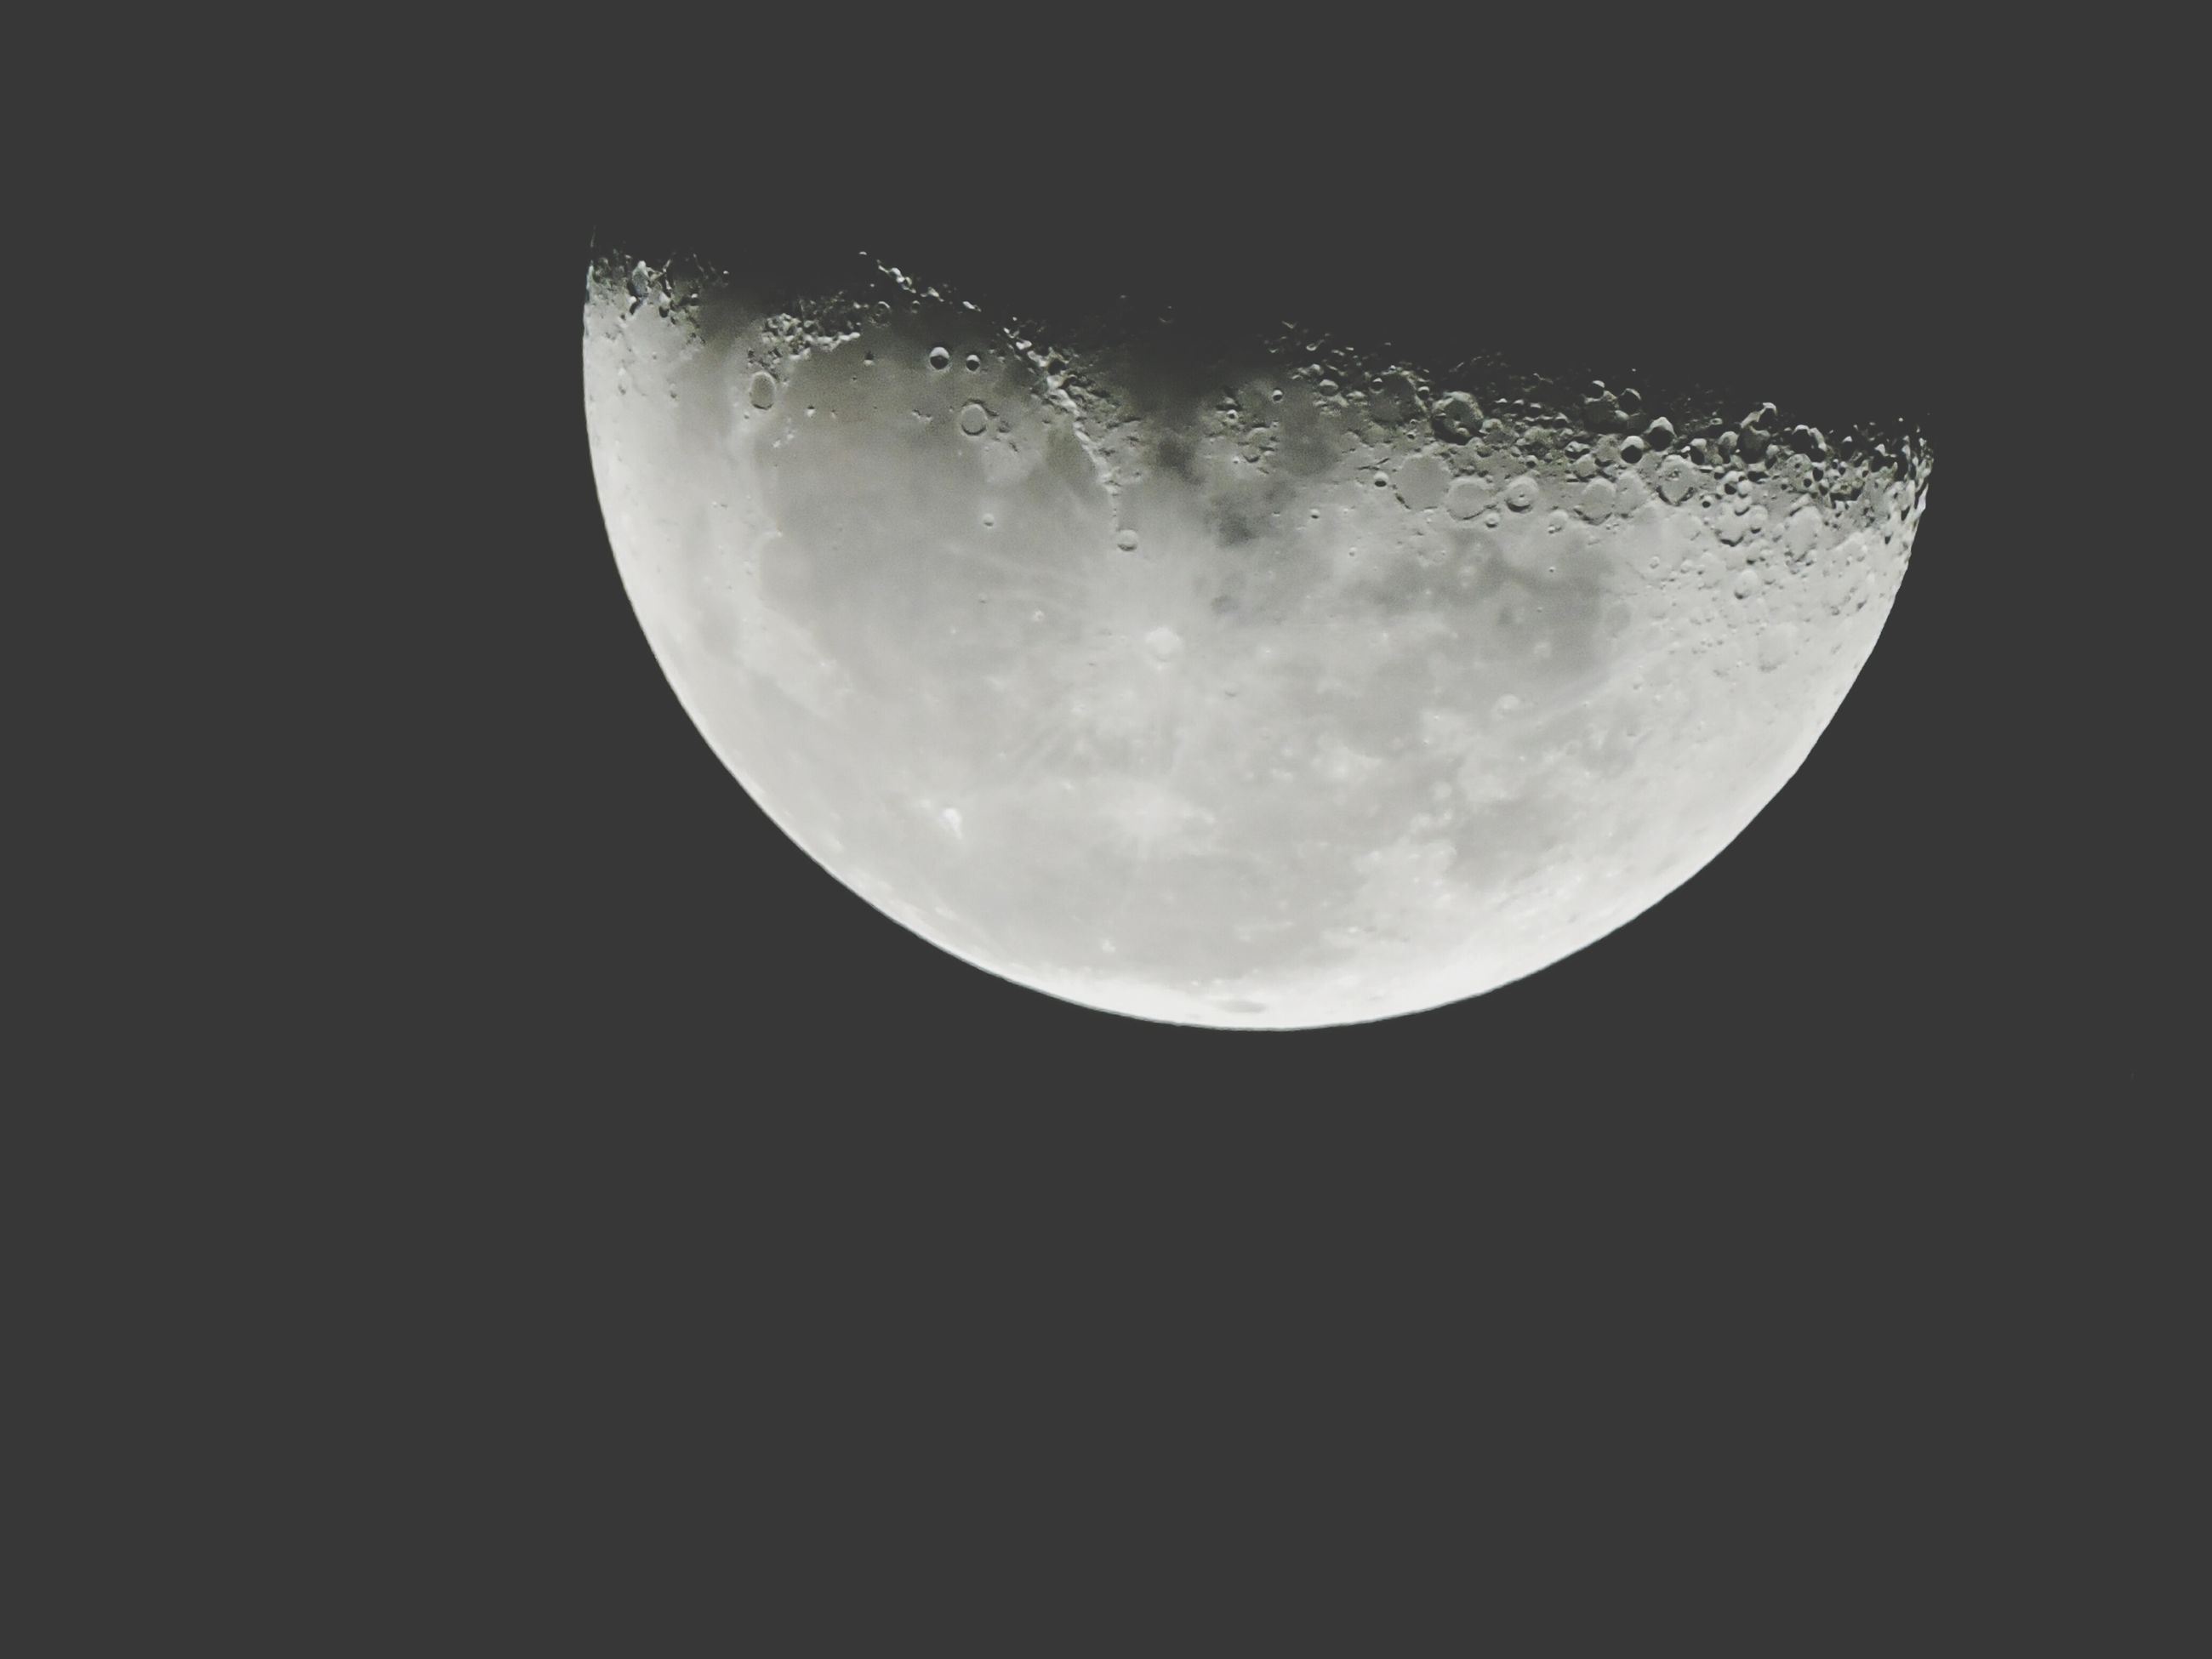 moon, astronomy, night, planetary moon, full moon, low angle view, space exploration, moon surface, beauty in nature, sky, scenics, dark, tranquil scene, space, tranquility, nature, circle, majestic, discovery, moonlight